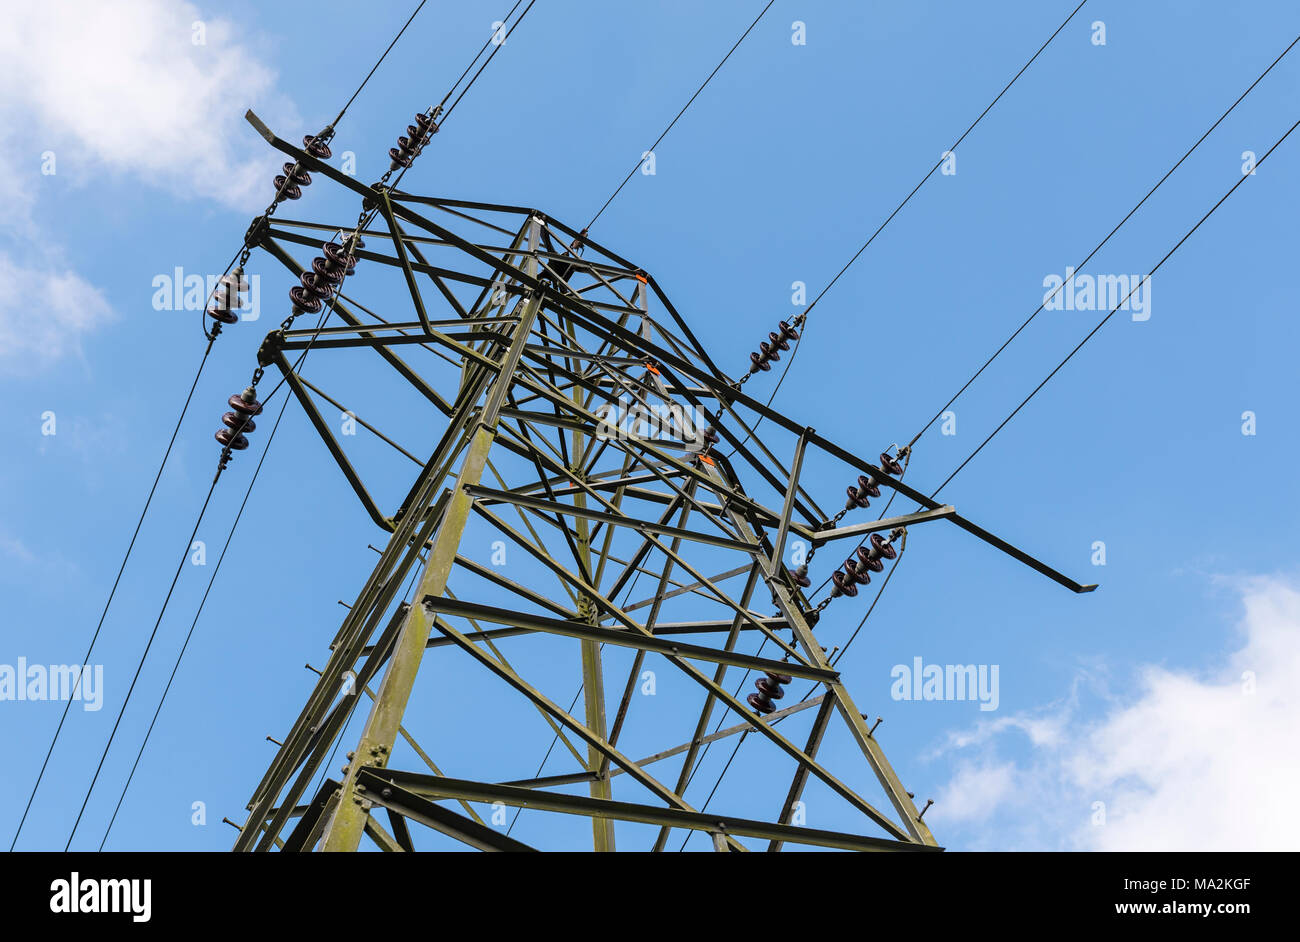 National grid uk stock photos national grid uk stock images alamy electricity pylon and wires carrying electrical power on the national grid in the uk biocorpaavc Image collections